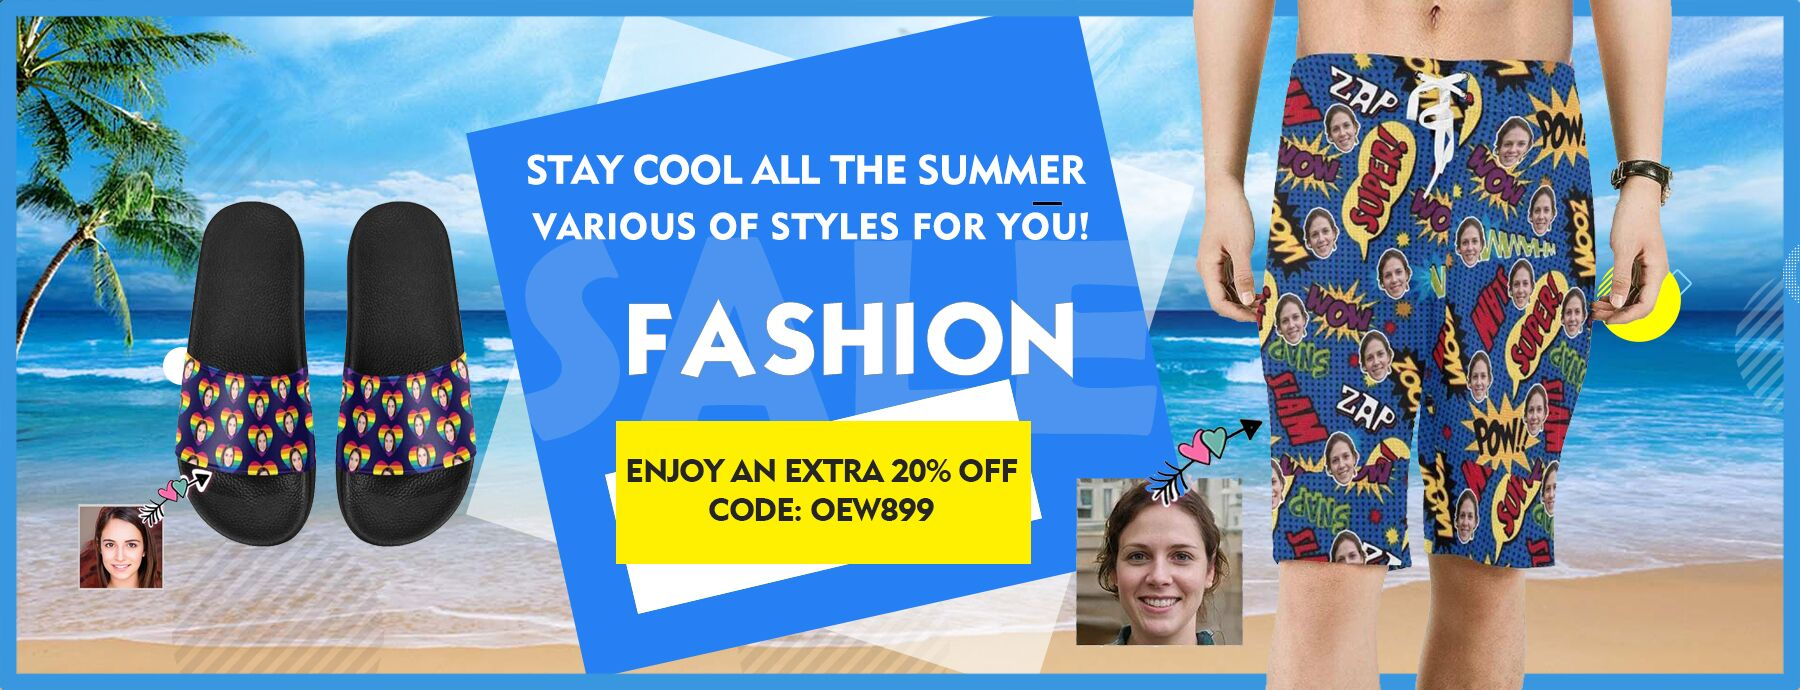 PERSONALIZED SUMMER WEAR | STAY COOL ALL SUMMER